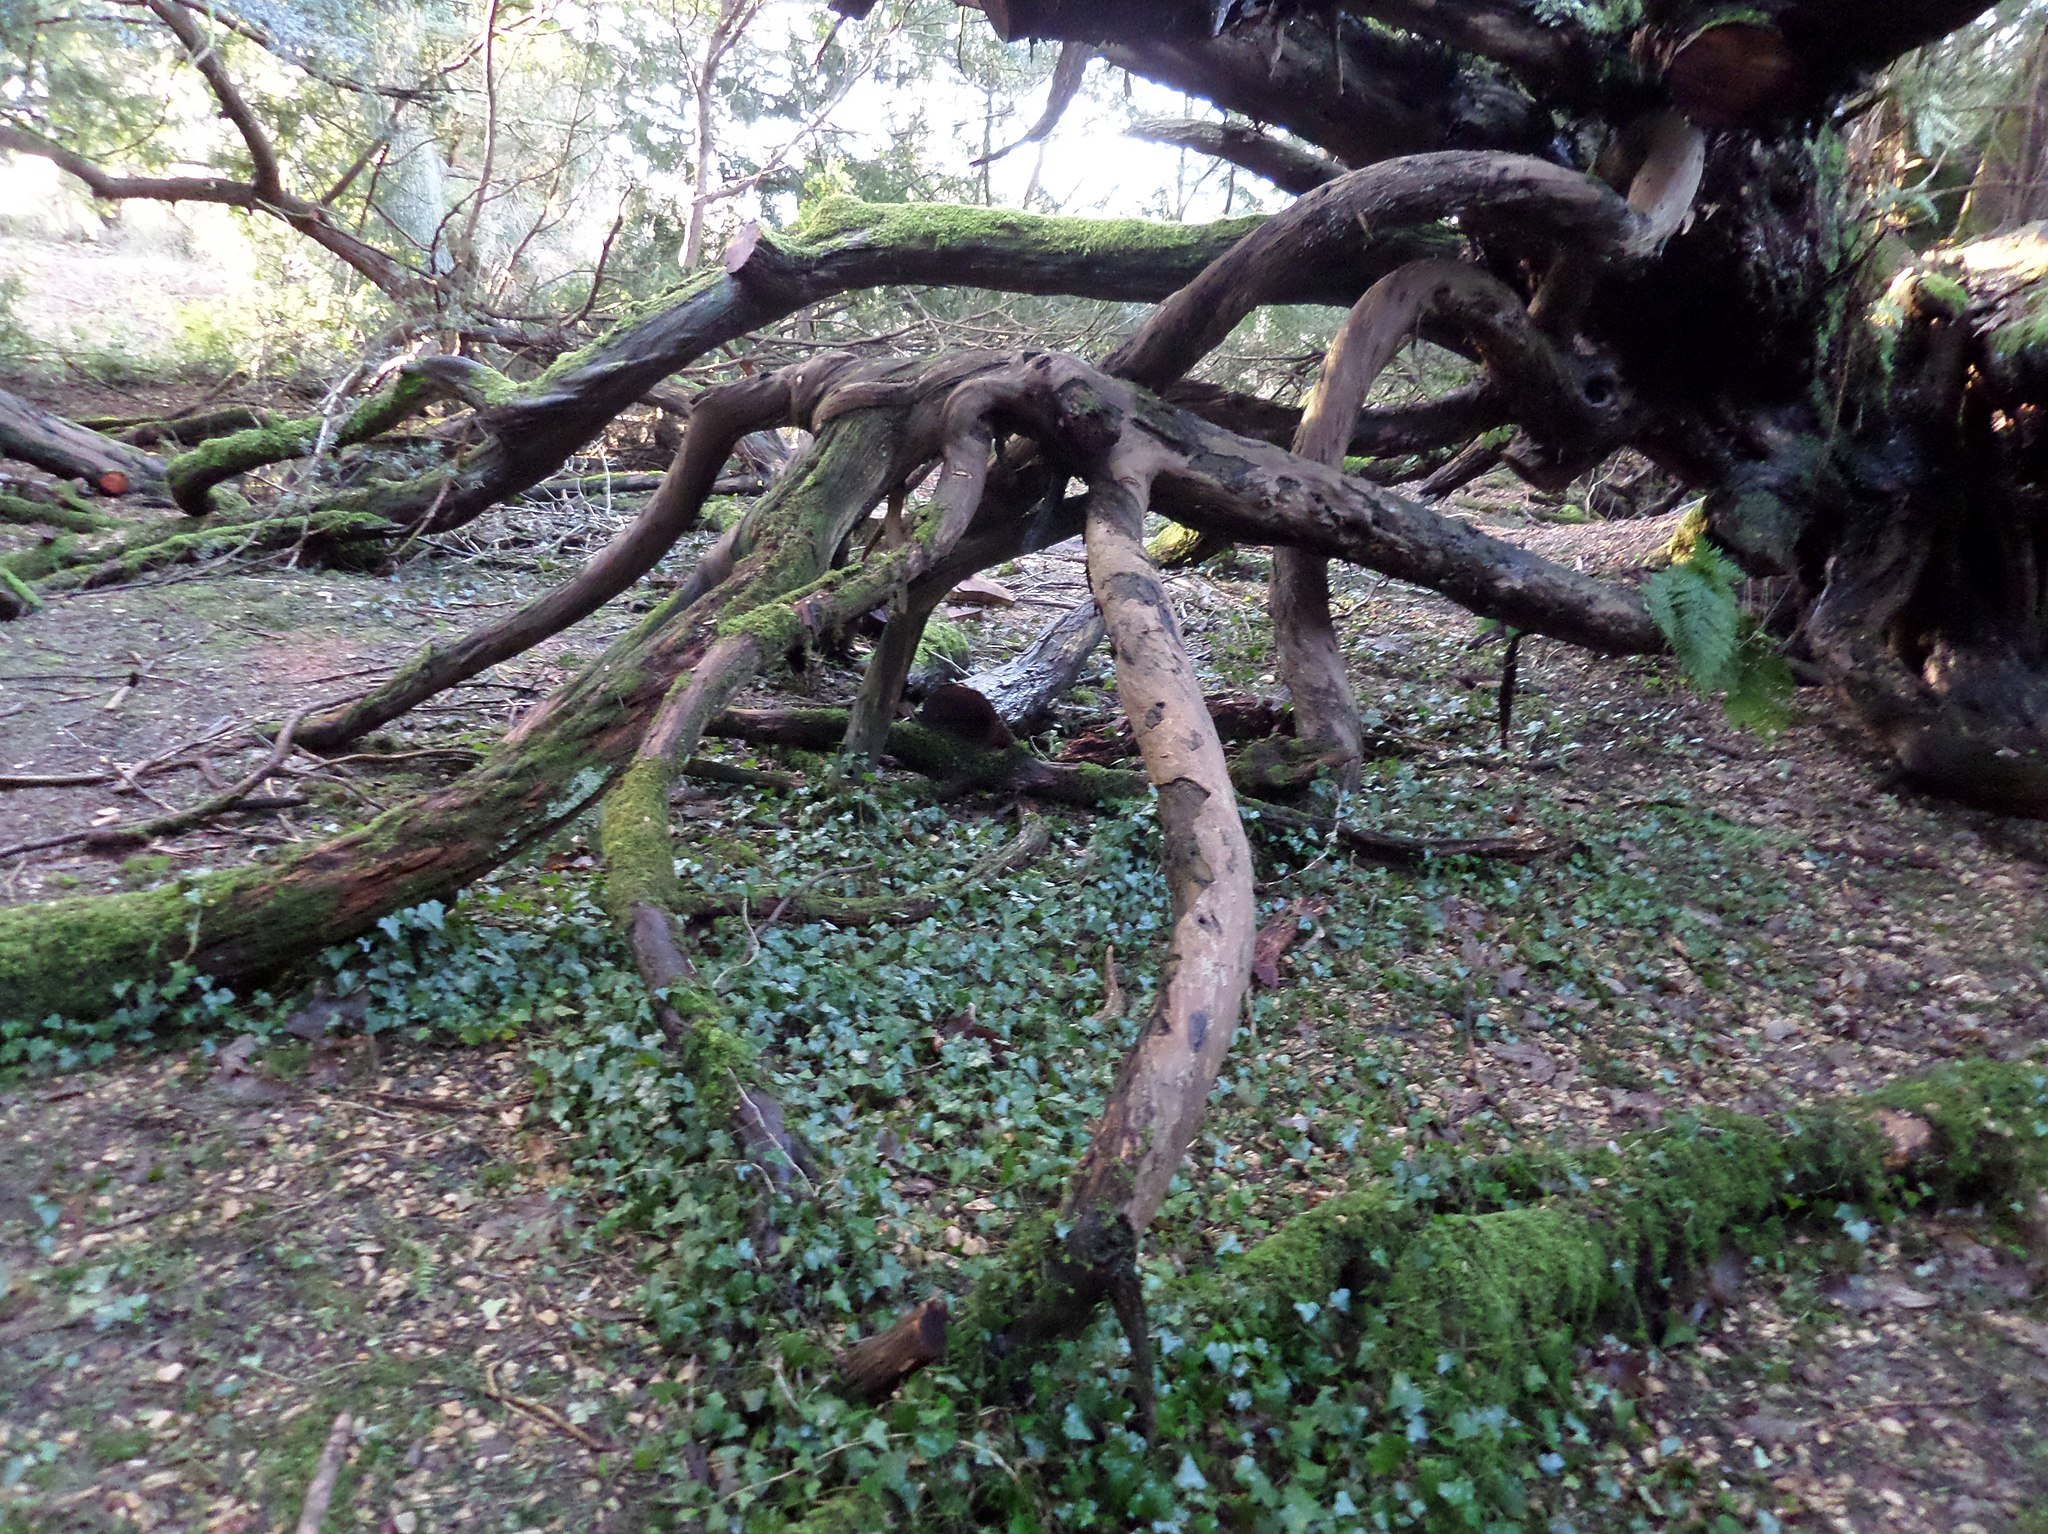 Magick, Mortality, and the Roots of Meaning